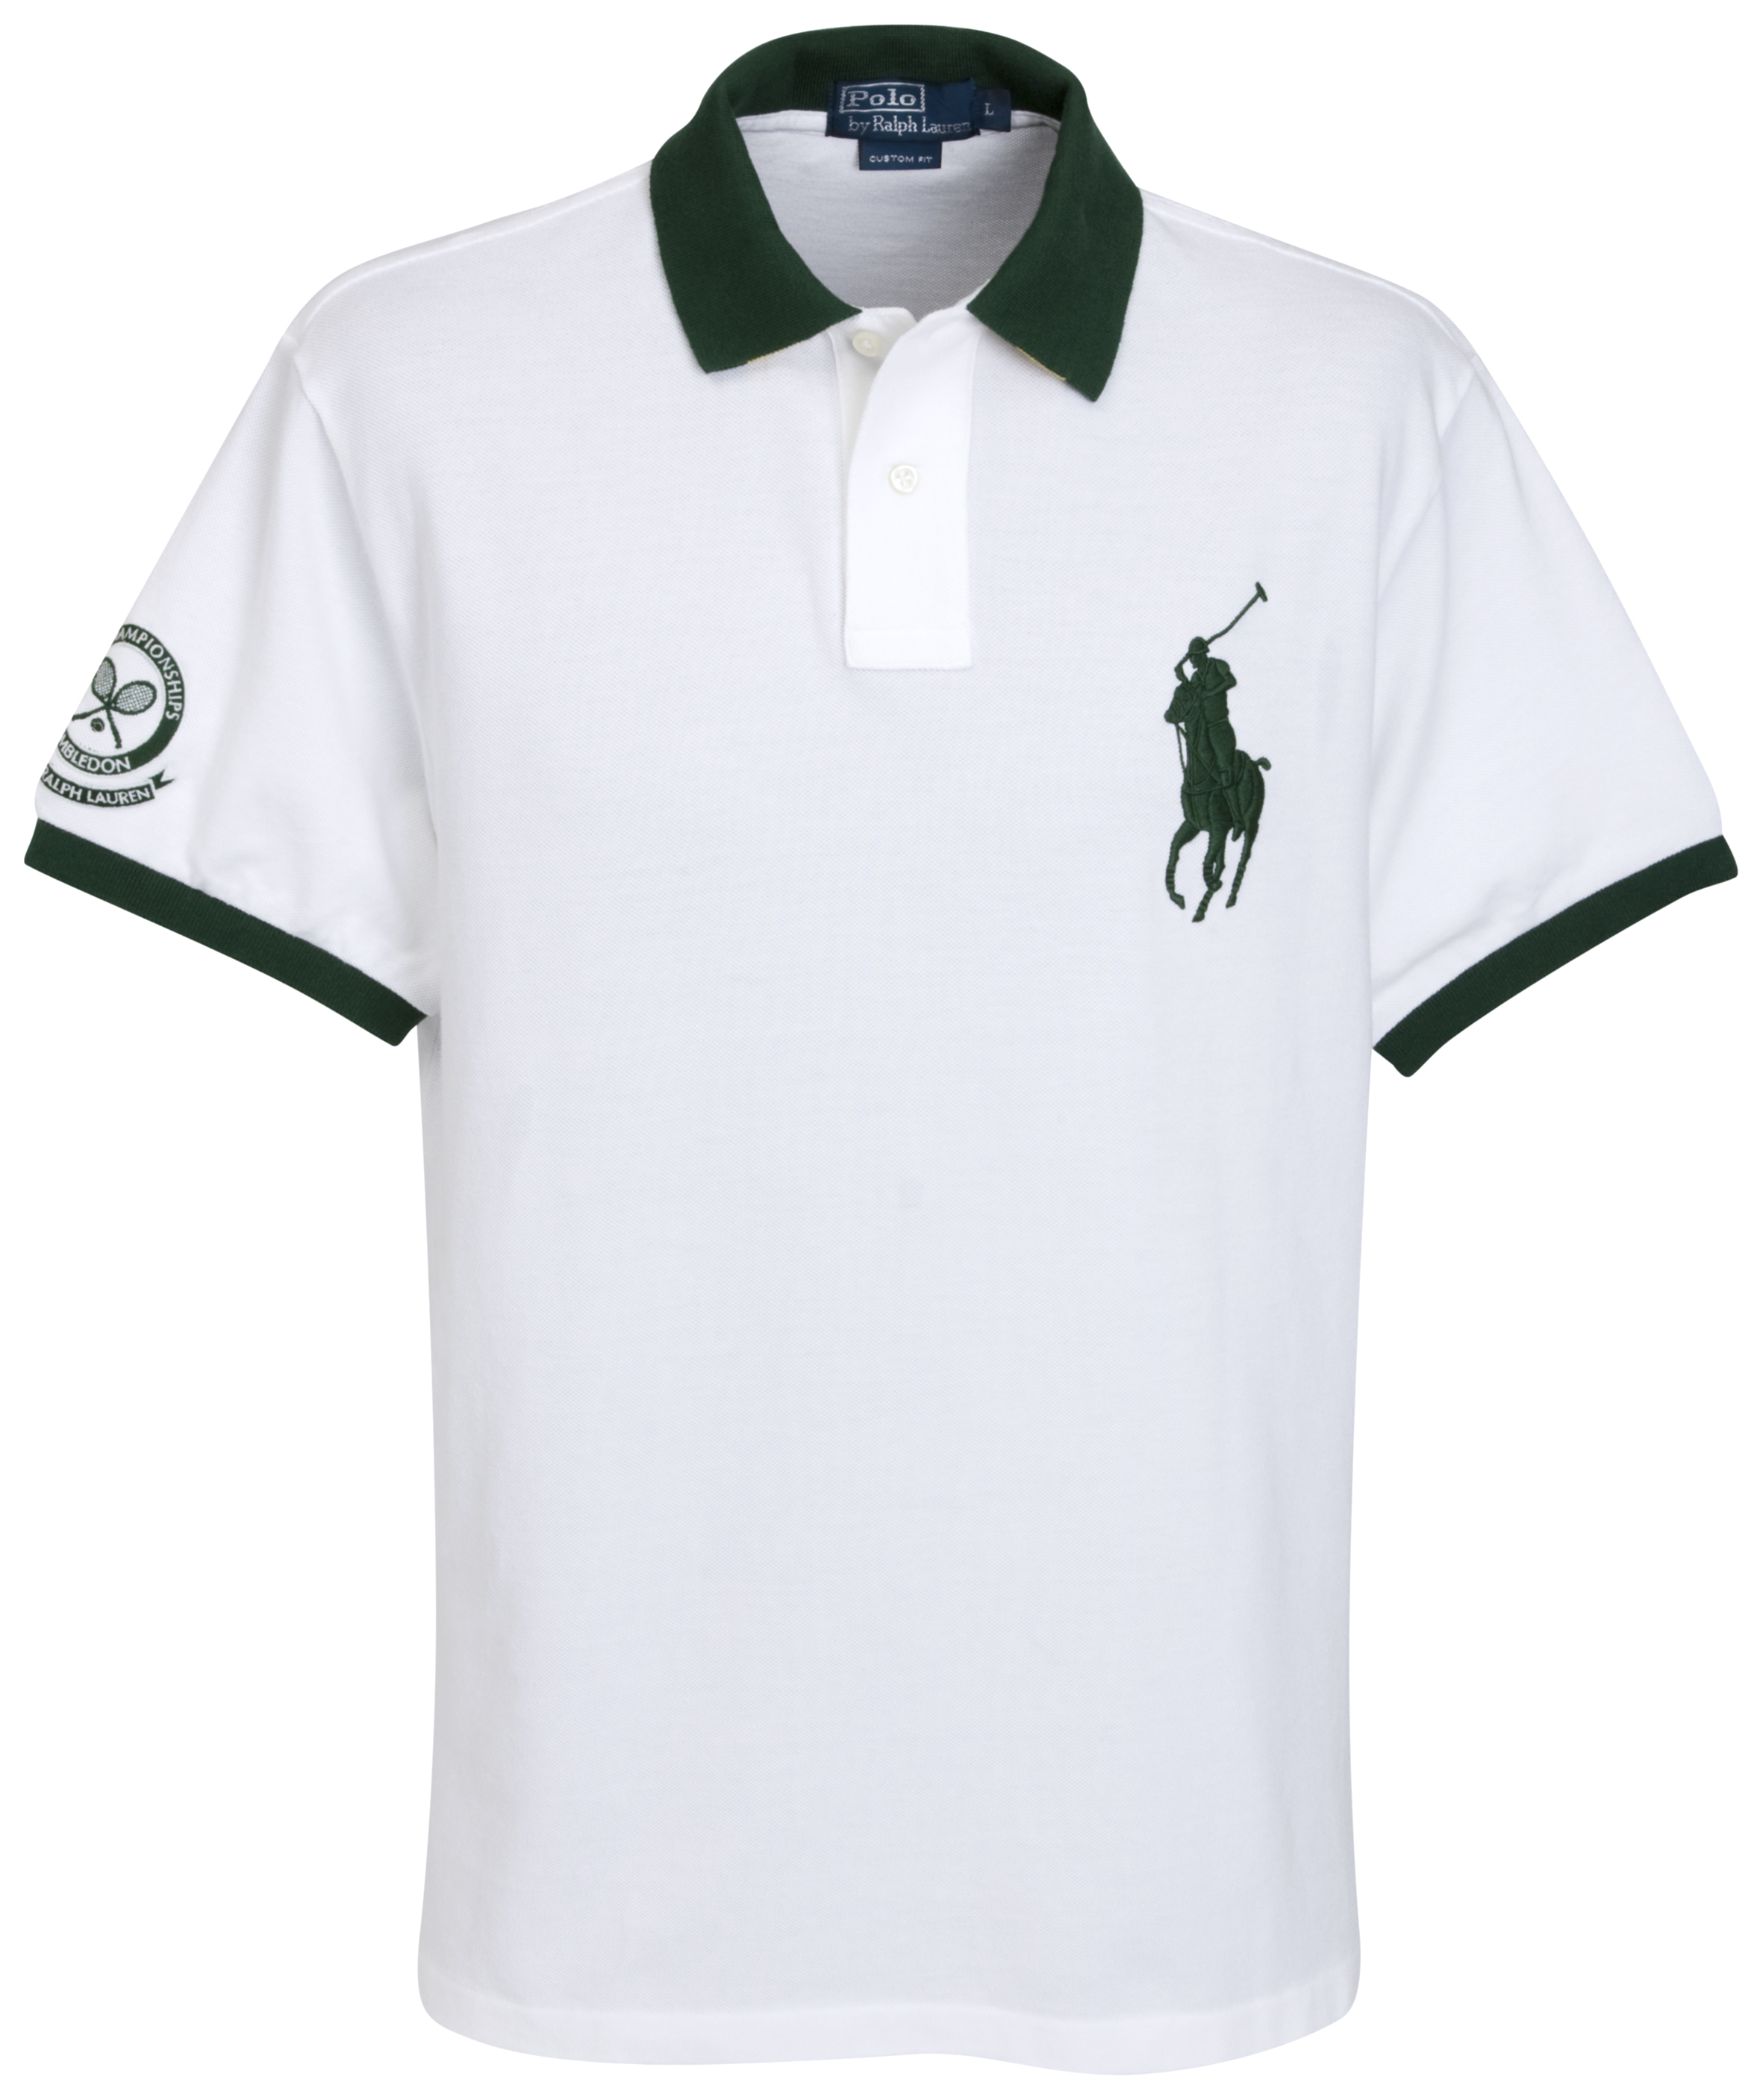 Polo Ralph Lauren Wimbledon Tipped Collar Polo  - White